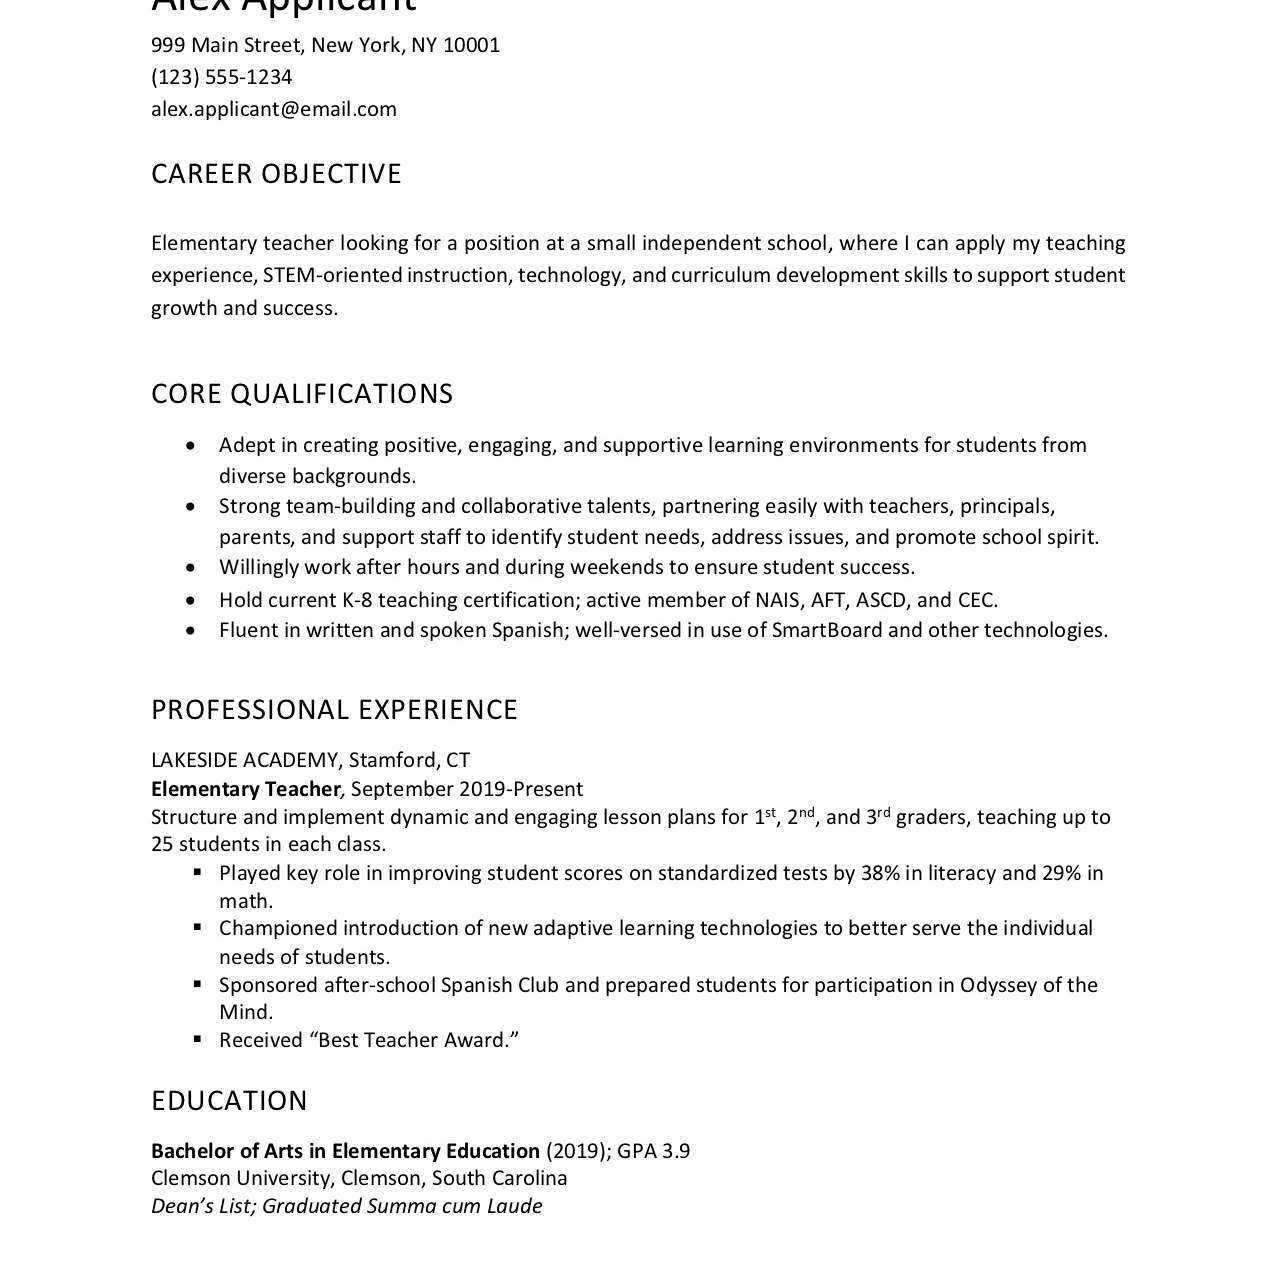 resume objective examples and writing tips statement entry level 2063595res customer Resume Resume Objective Statement Entry Level Examples